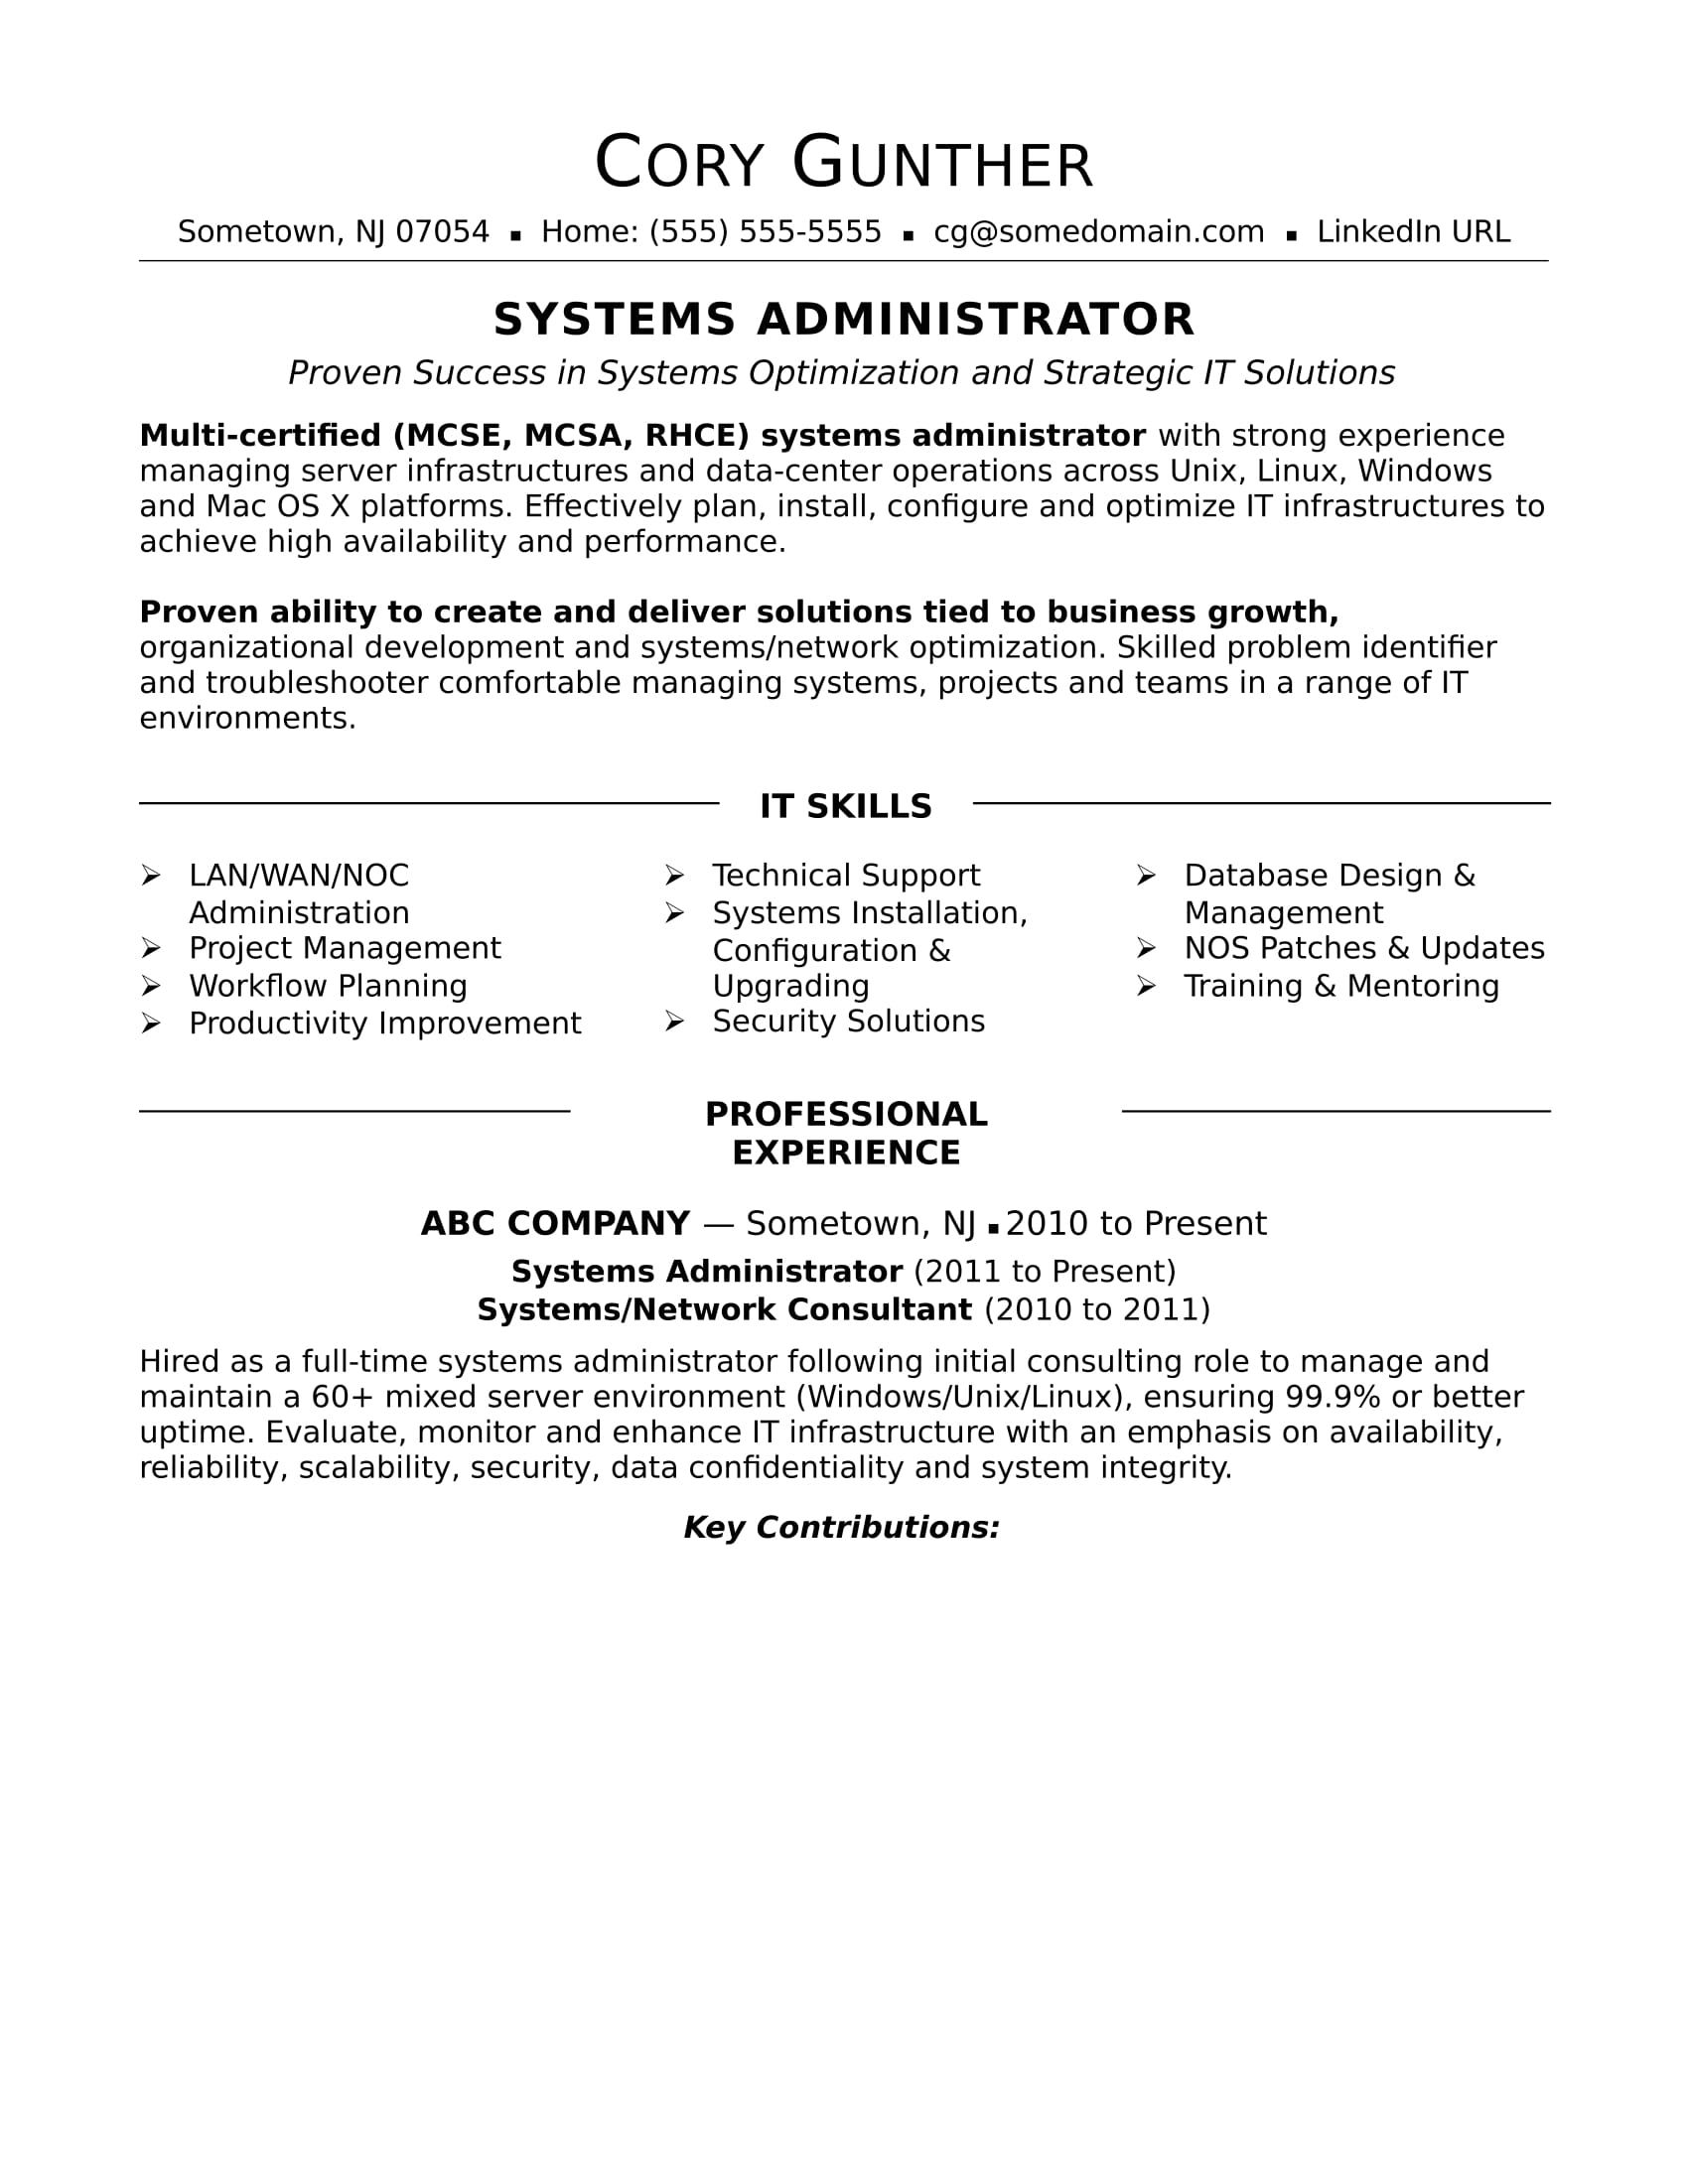 9 Years Experience Resume Format System Administrator Resume